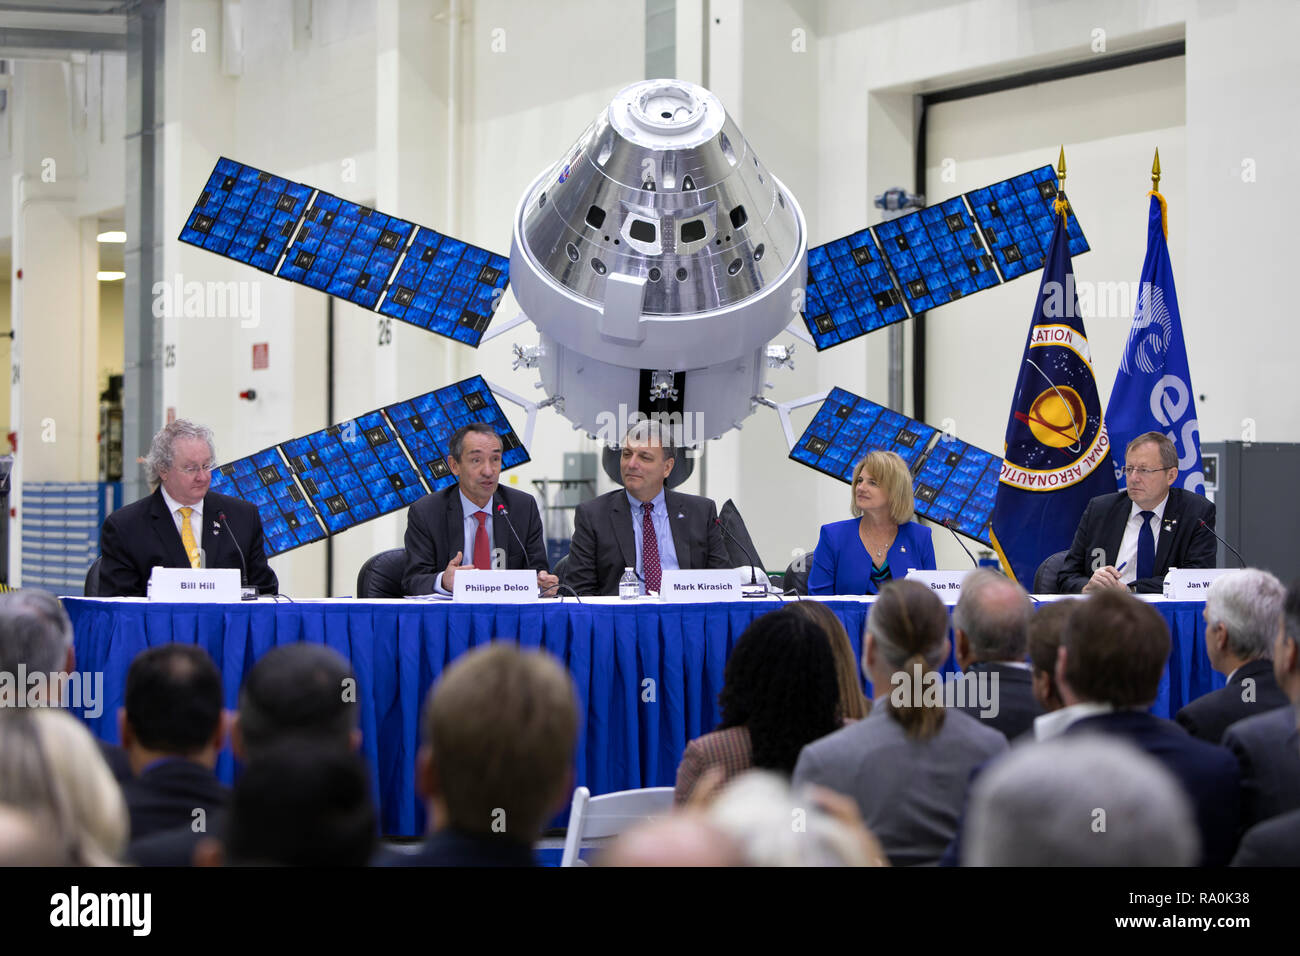 NASA and European Space Agency  senior managers answer questions during the Powering Exploration Mission ceremony in the Neil Armstrong Operations and Checkout Building high bay at the Kennedy Space Center November 16, 2018 in Cape Canaveral, Florida. From left, are Bill Hill, deputy associate administrator for Exploration Systems Development; Phillippe Deloo, European Service Module program manager at ESA; Mark Kirasich, Orion Program manager at the Johnson Space Center in Houston; Sue Motil, Orion European Service Module integration manager at the Glenn Research Center; and Jan Worner, ESA d - Stock Image